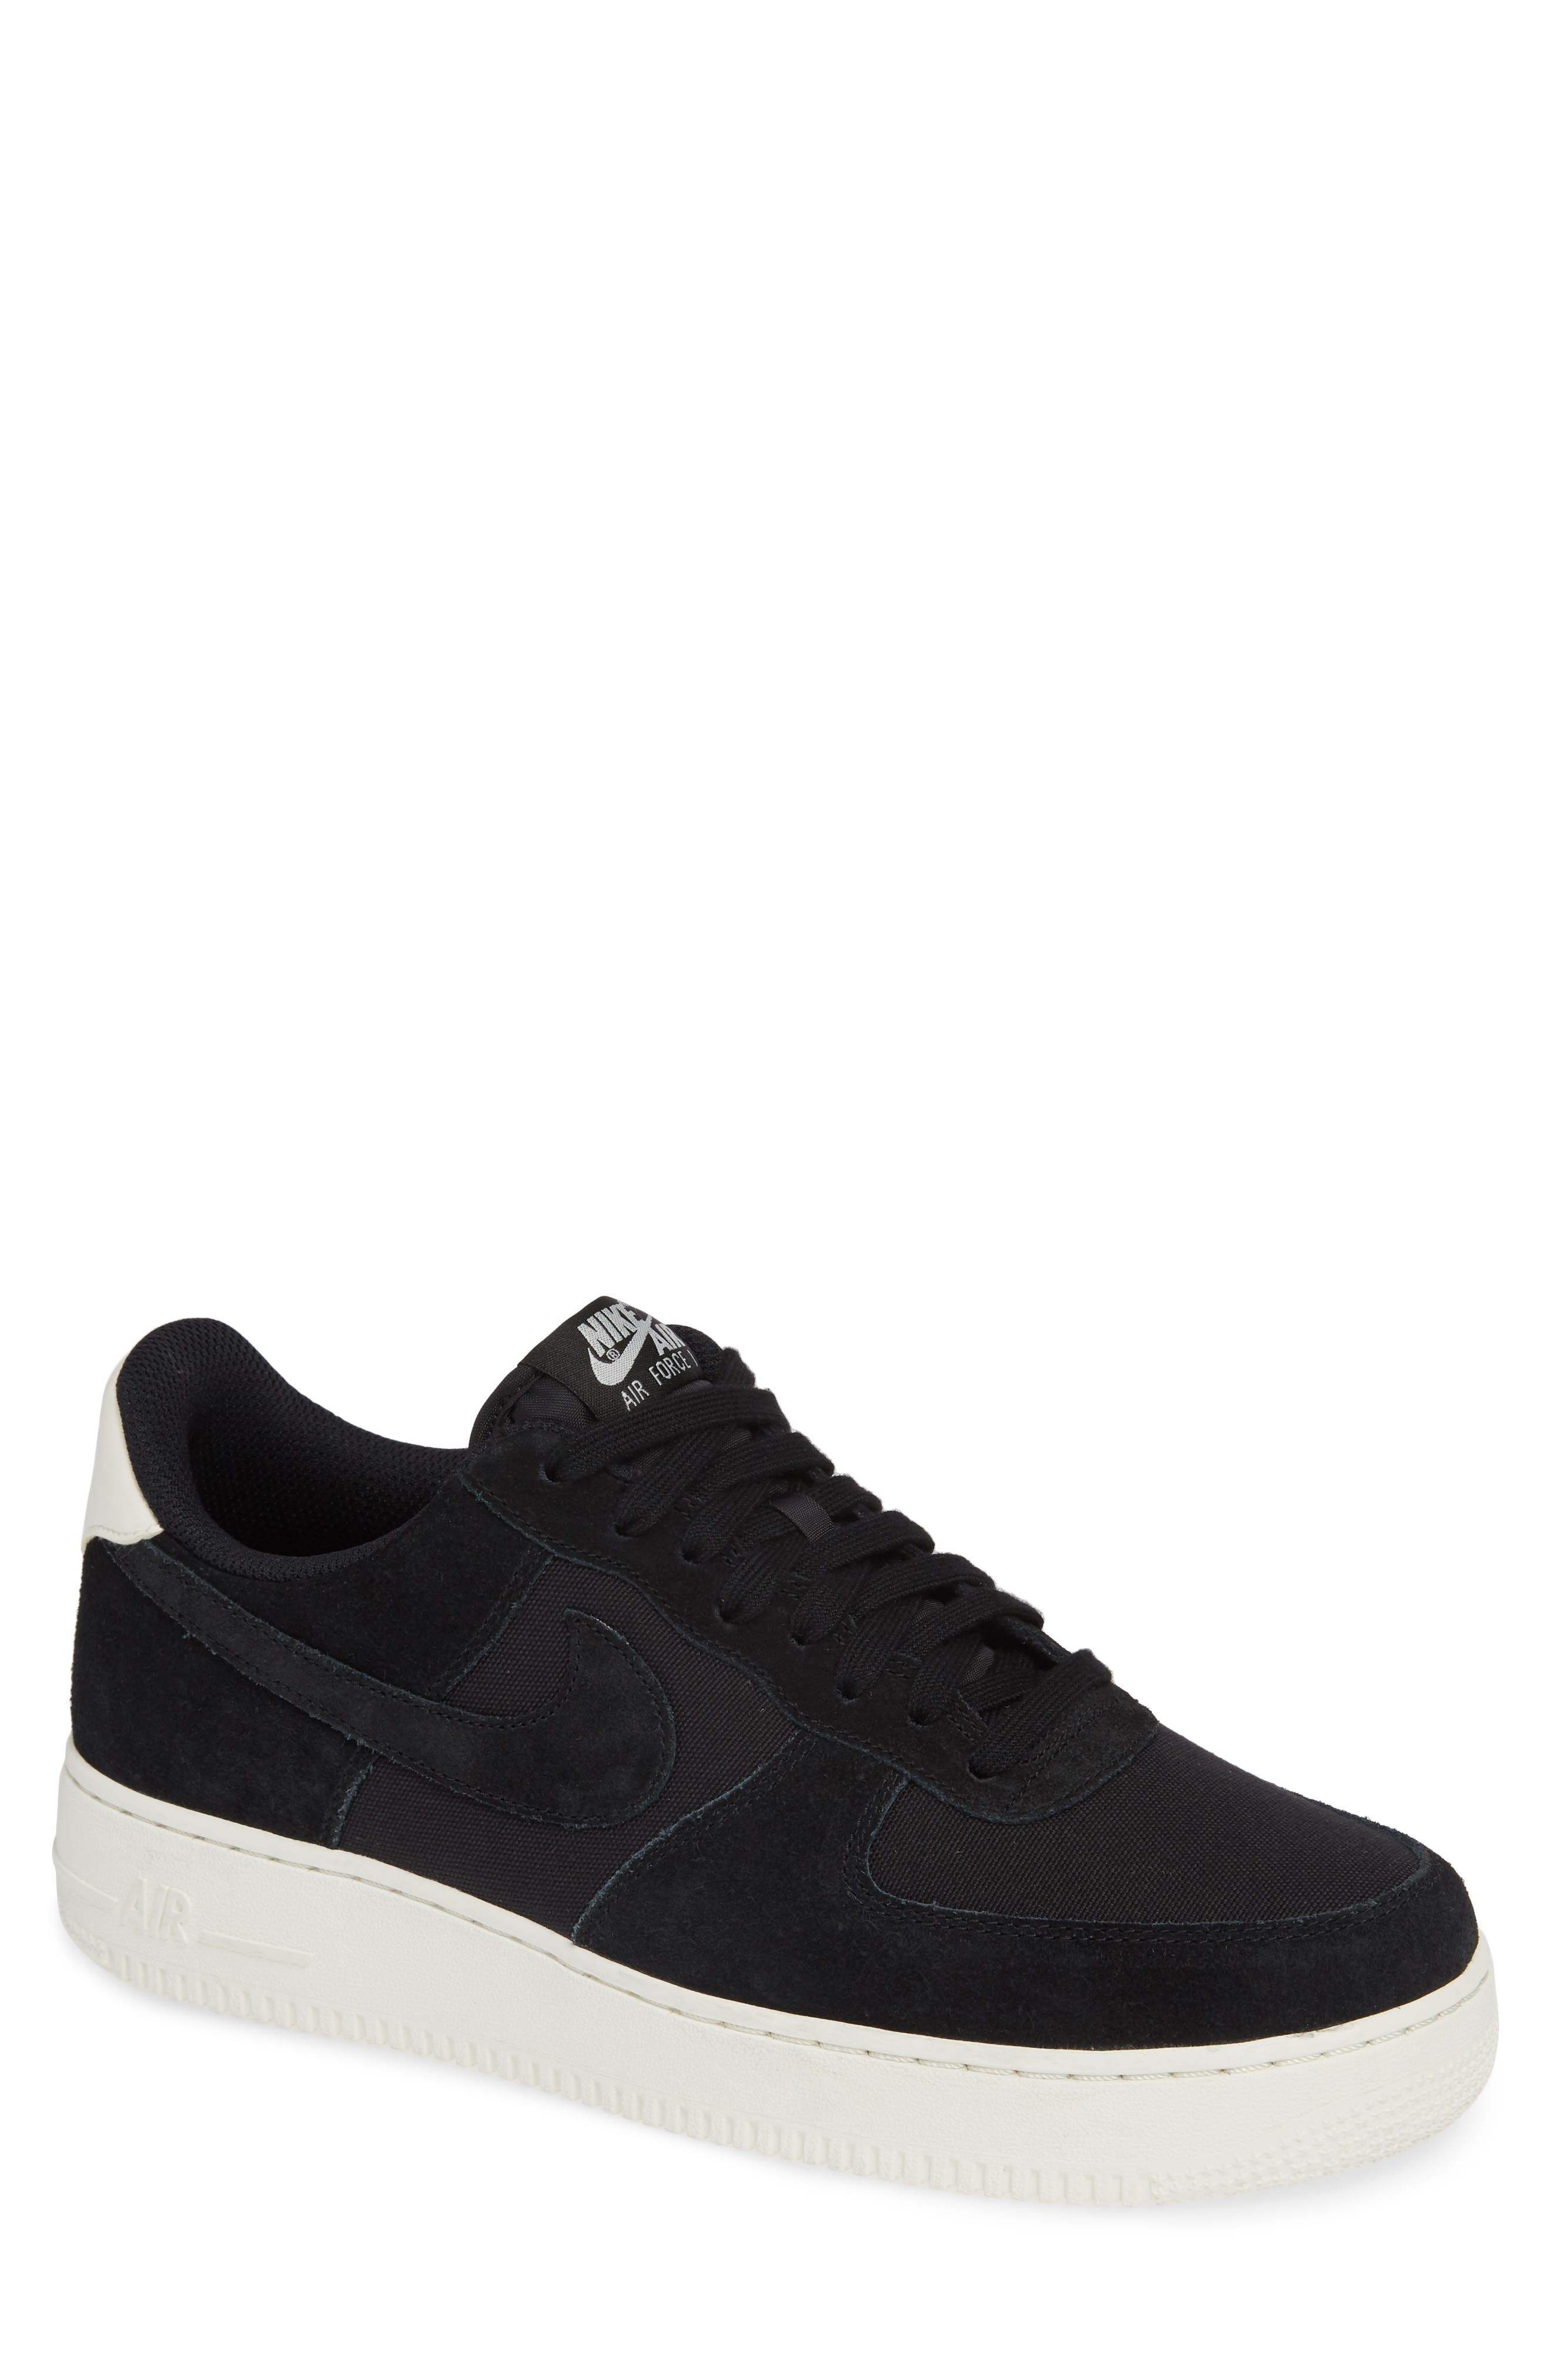 Air Force 1 '07 Suede Sneaker,                             Main thumbnail 1, color,                             BLACK/ SAIL